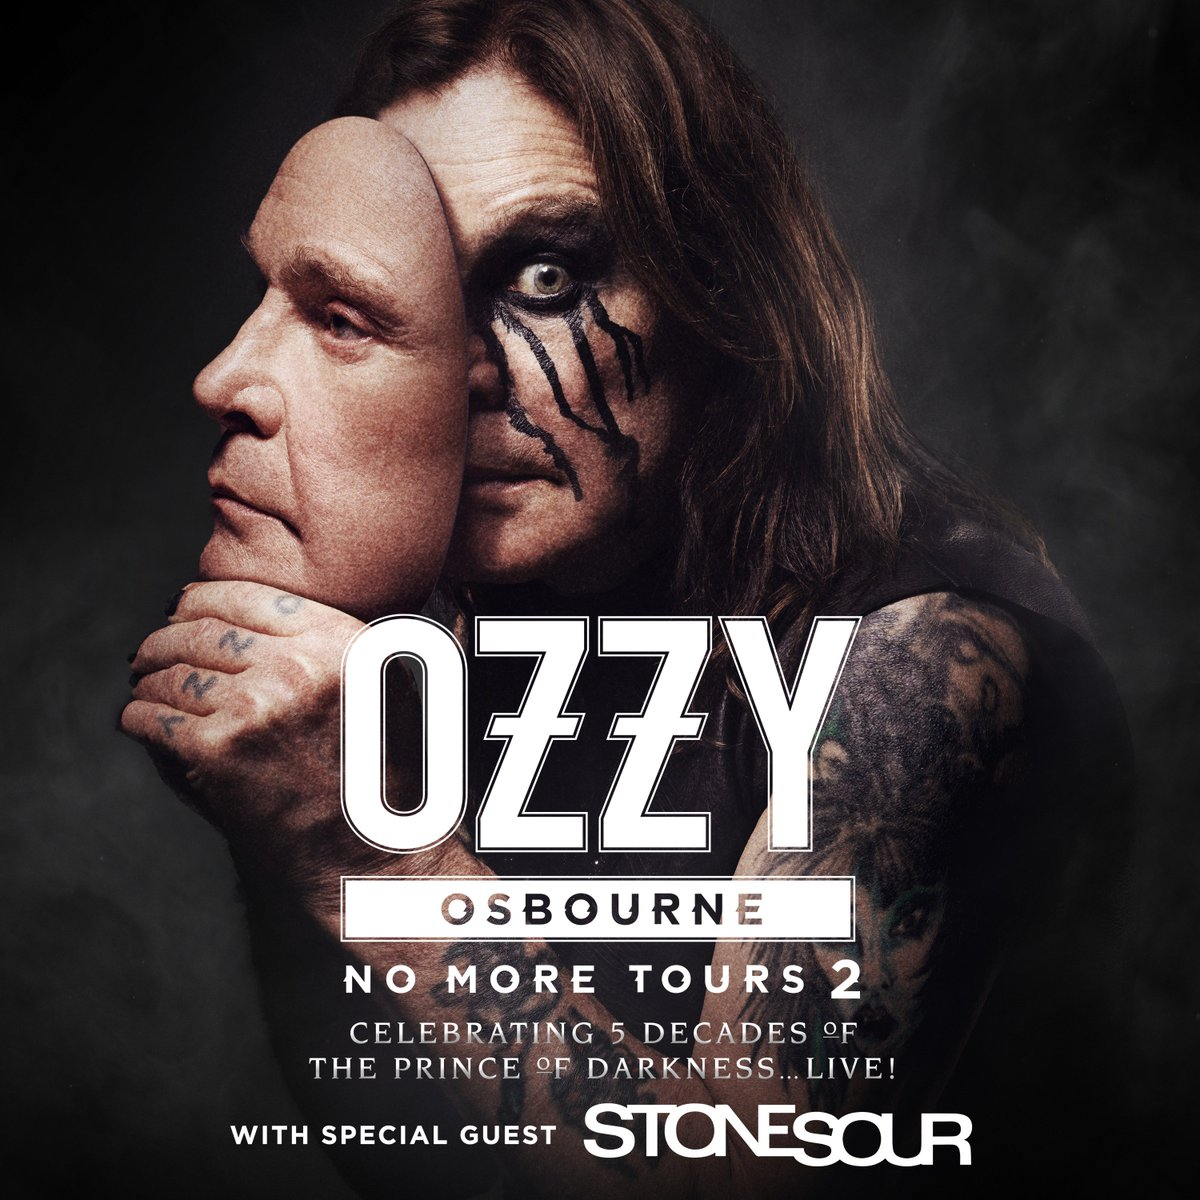 stone sour on twitter we re hitting the road with the legendary